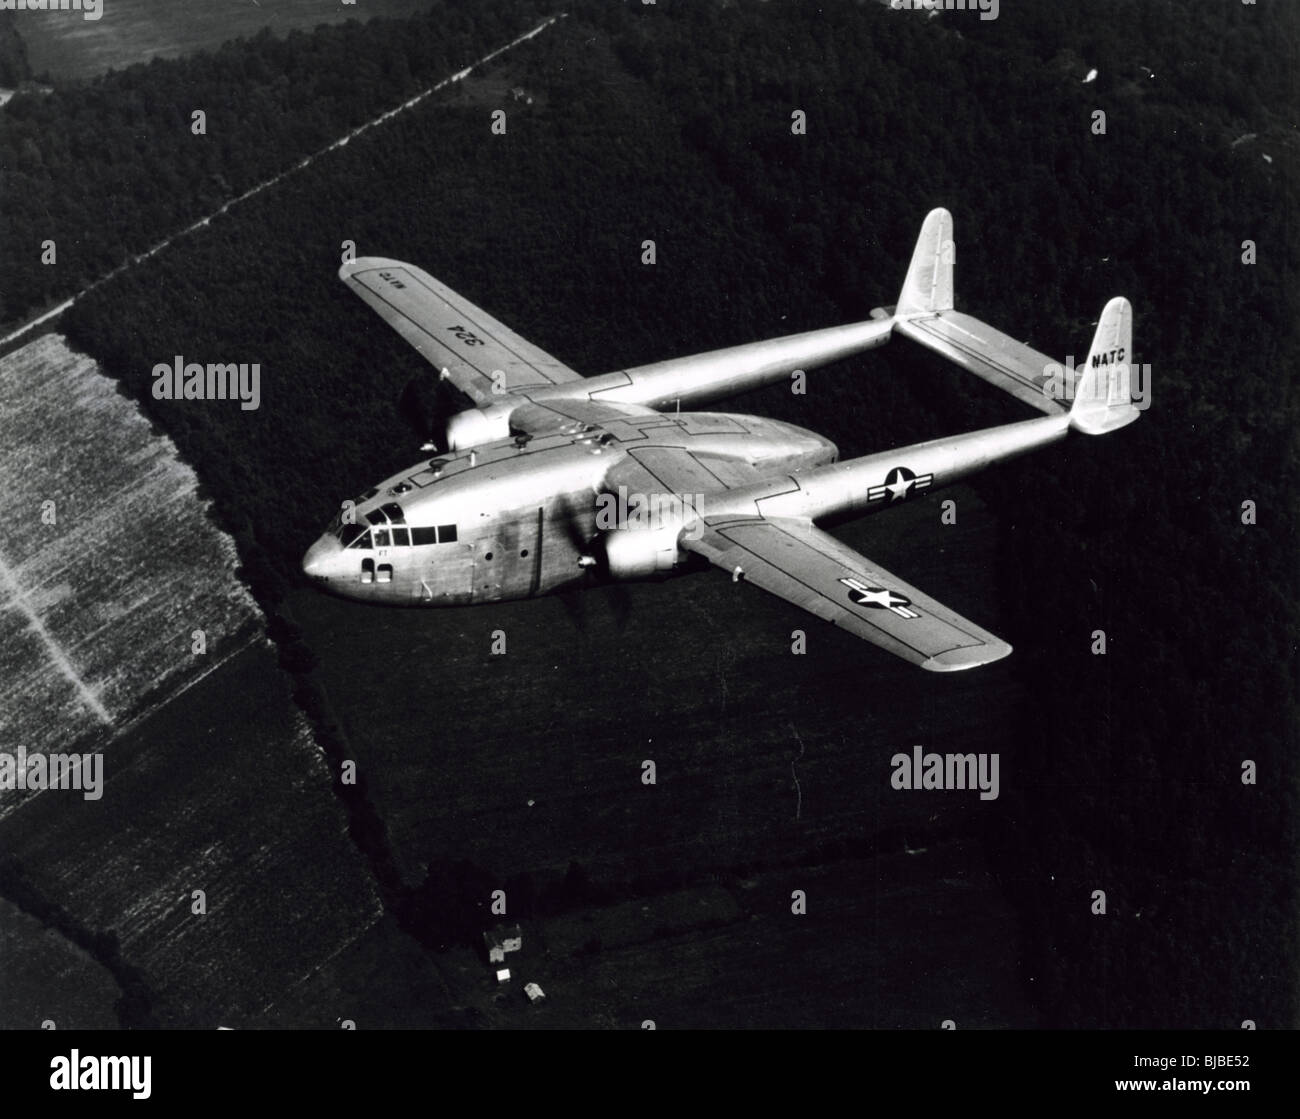 Korean War era Fairchild C119 flying boxcar twin engine cargo airplane flies on a mission. American military transport - Stock Image